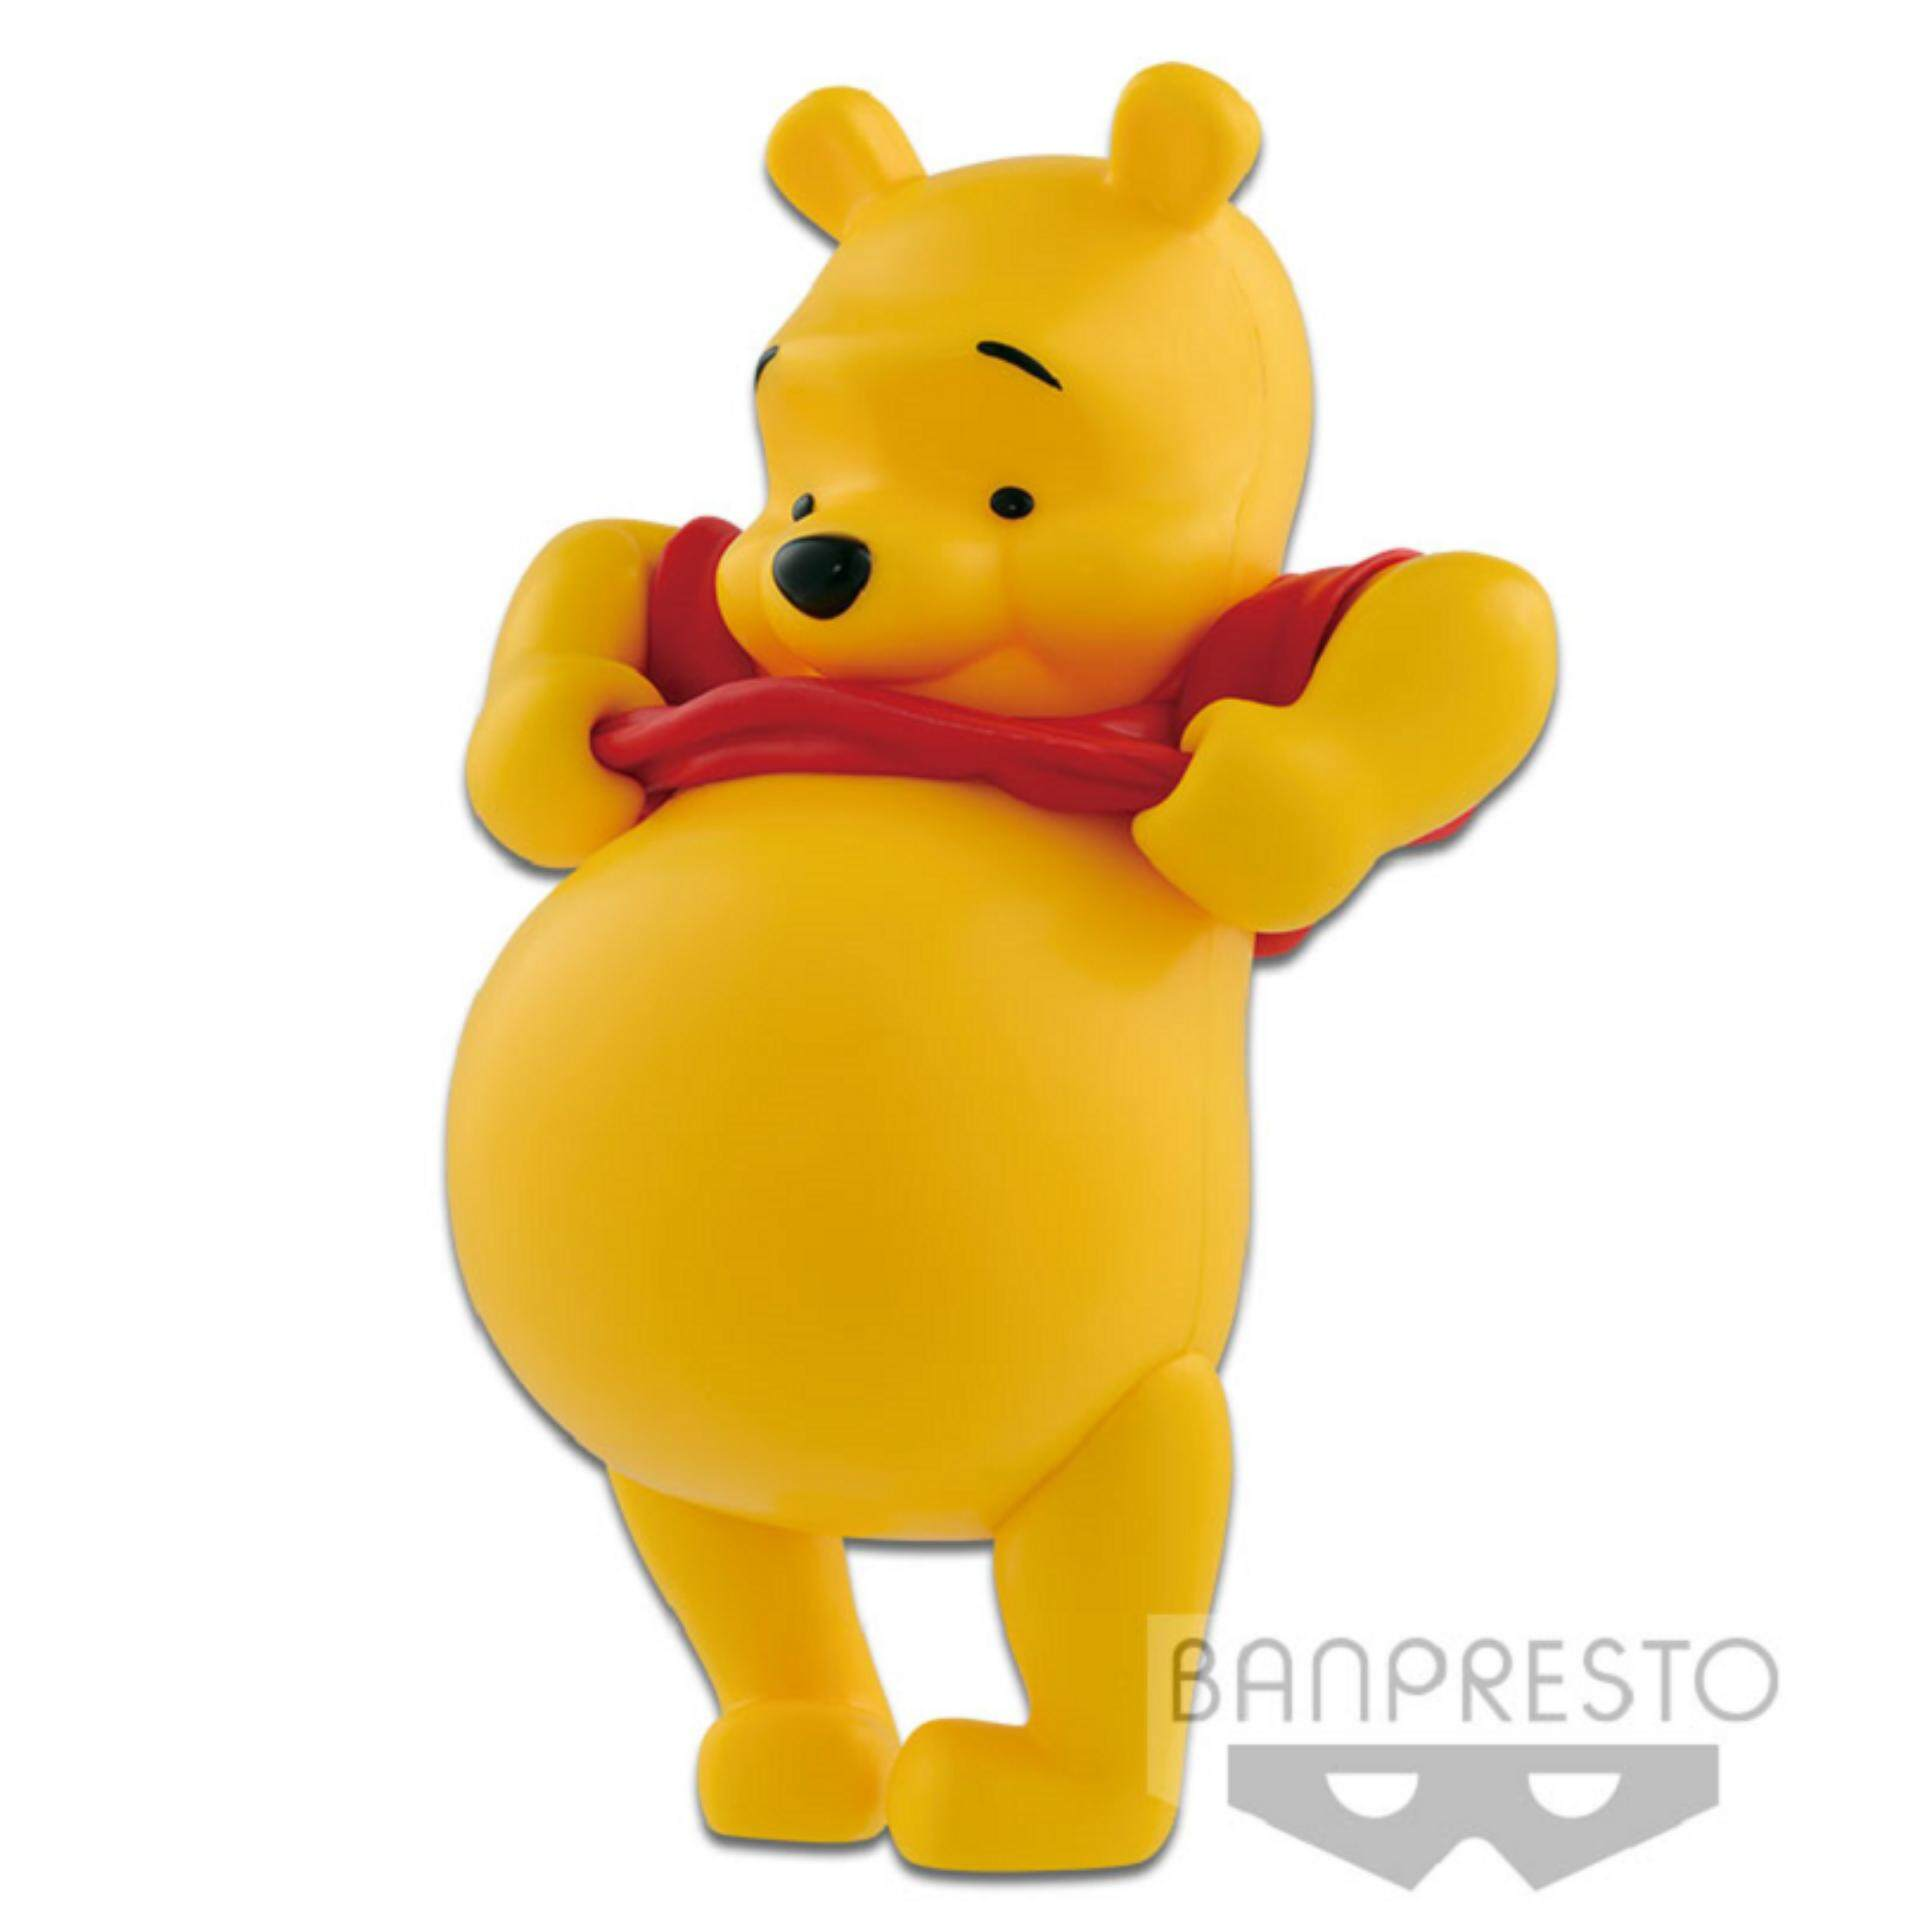 f3ef8ef5b9ea Banpresto Supreme Collection Disney Winnie The Pooh Figure ...